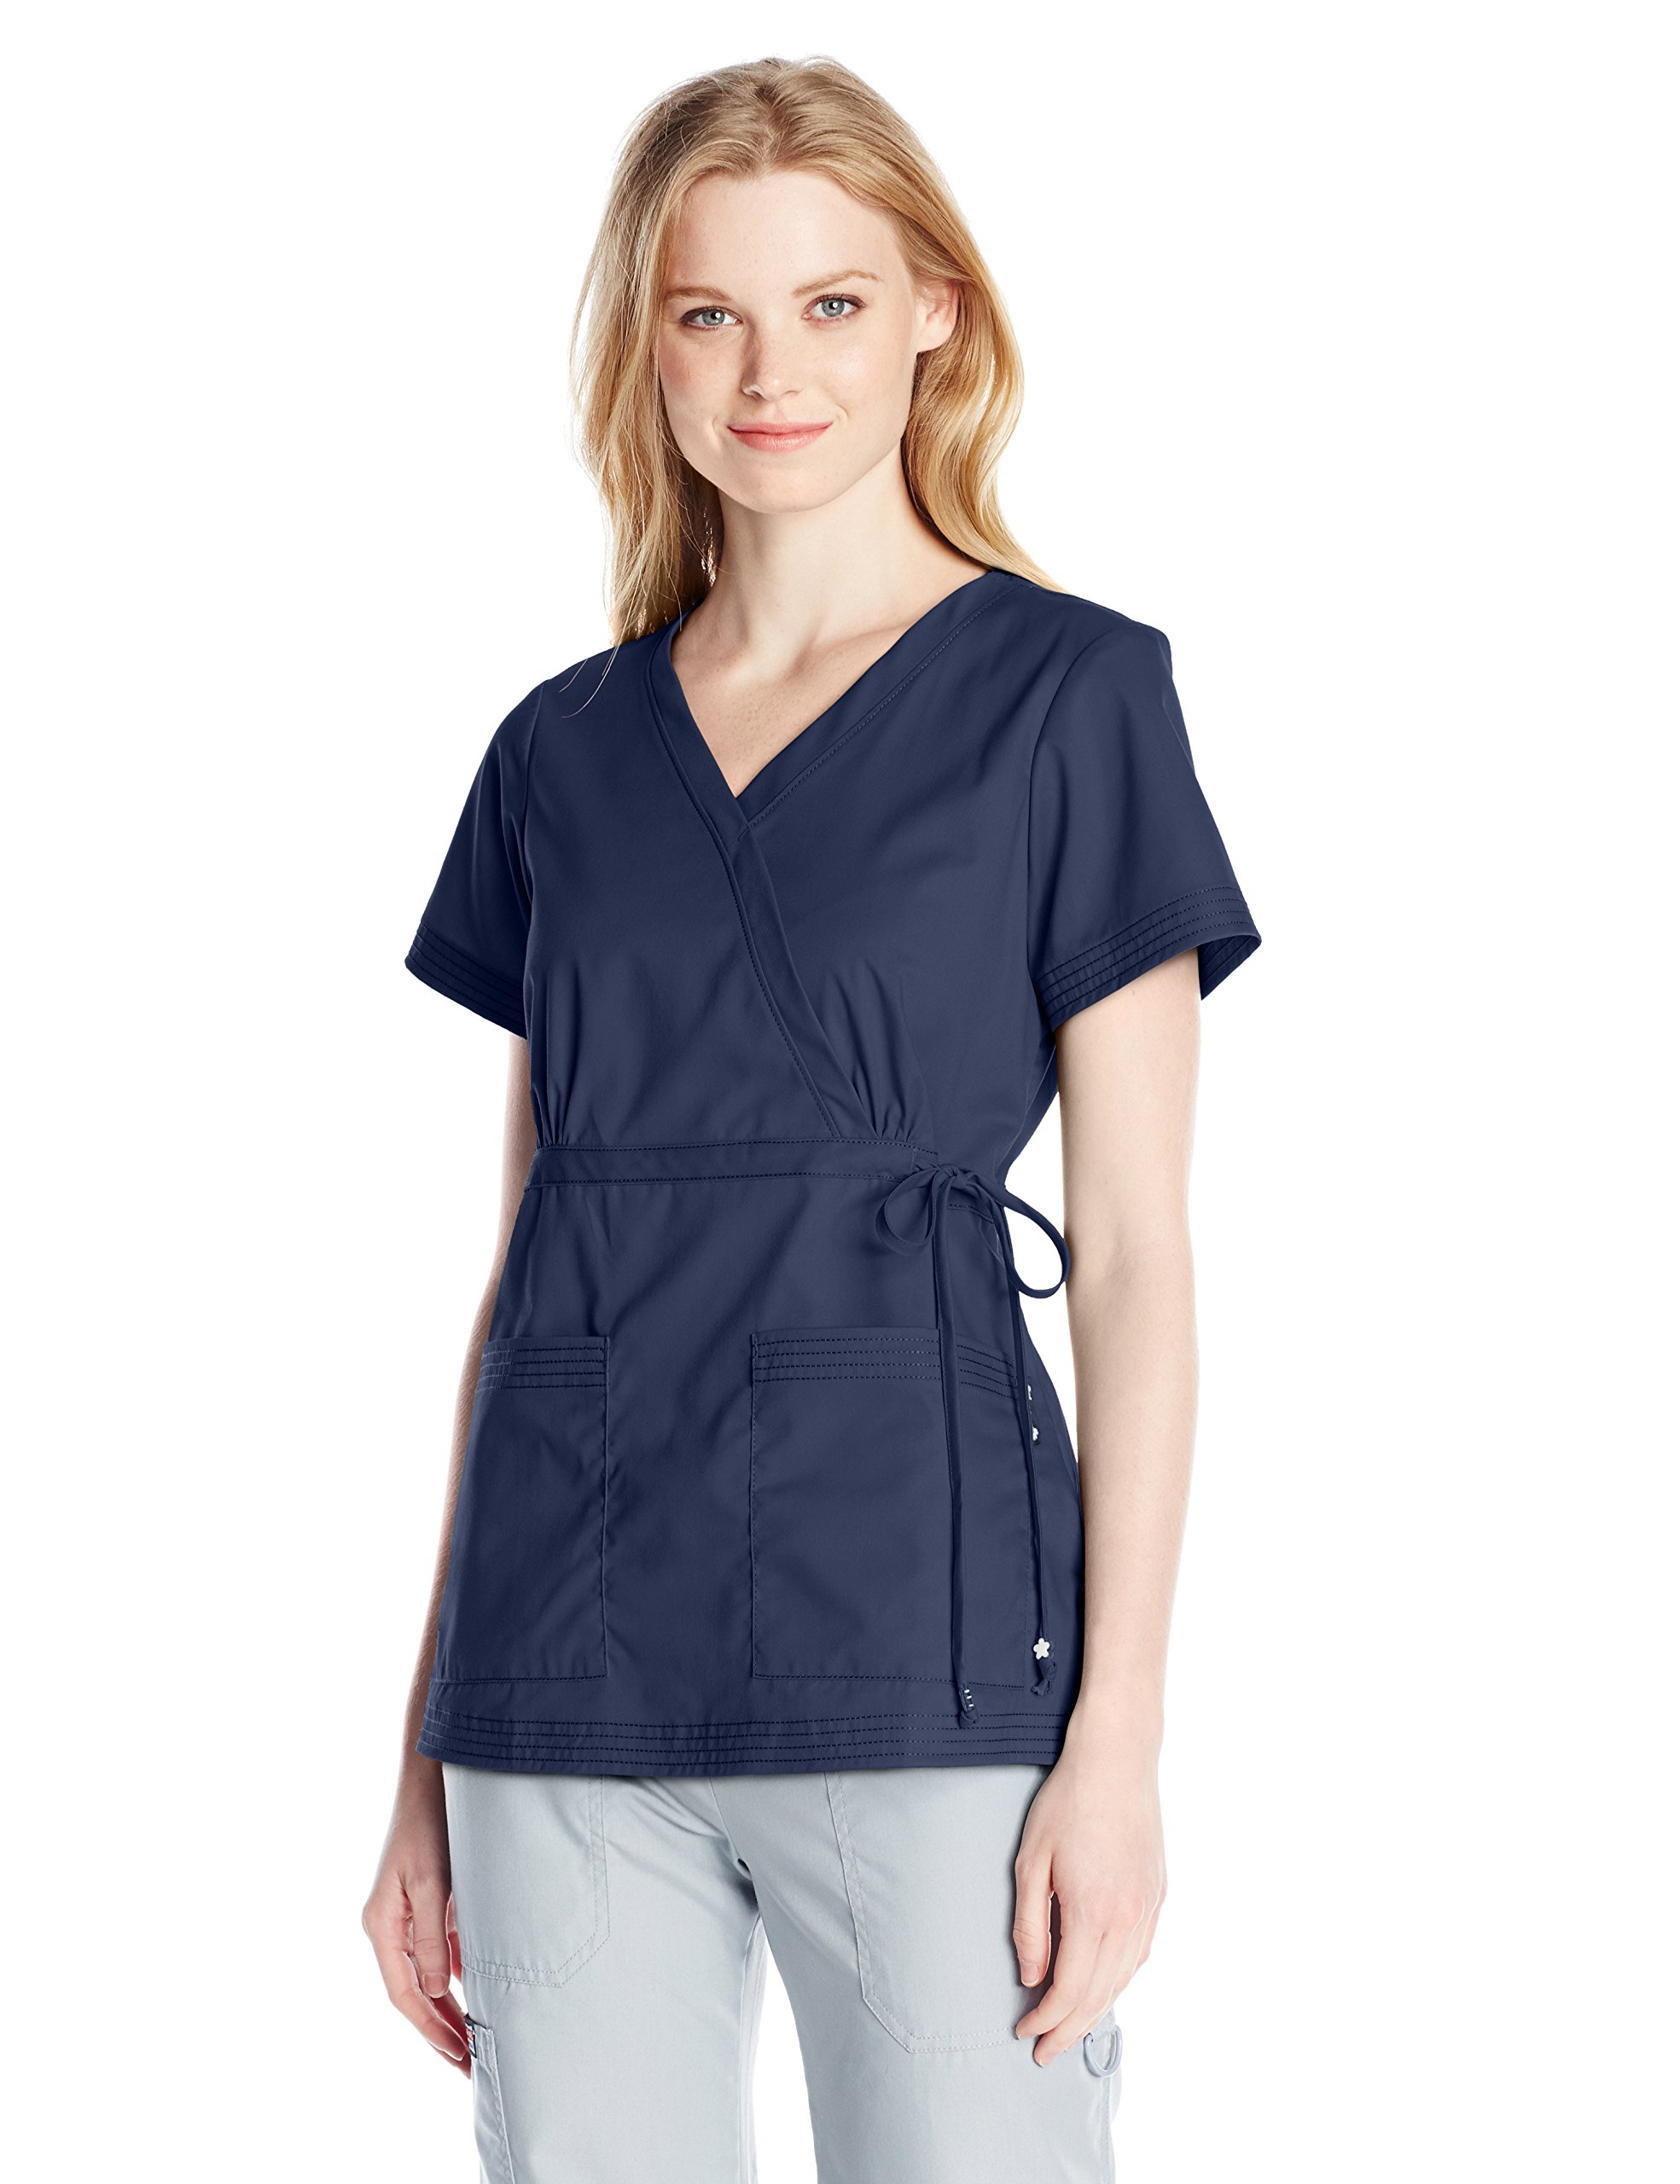 KOI Women's Katelyn Easy-Fit Mock-Wrap Scrub Top with Adjustable Side Tie, Navy, Small